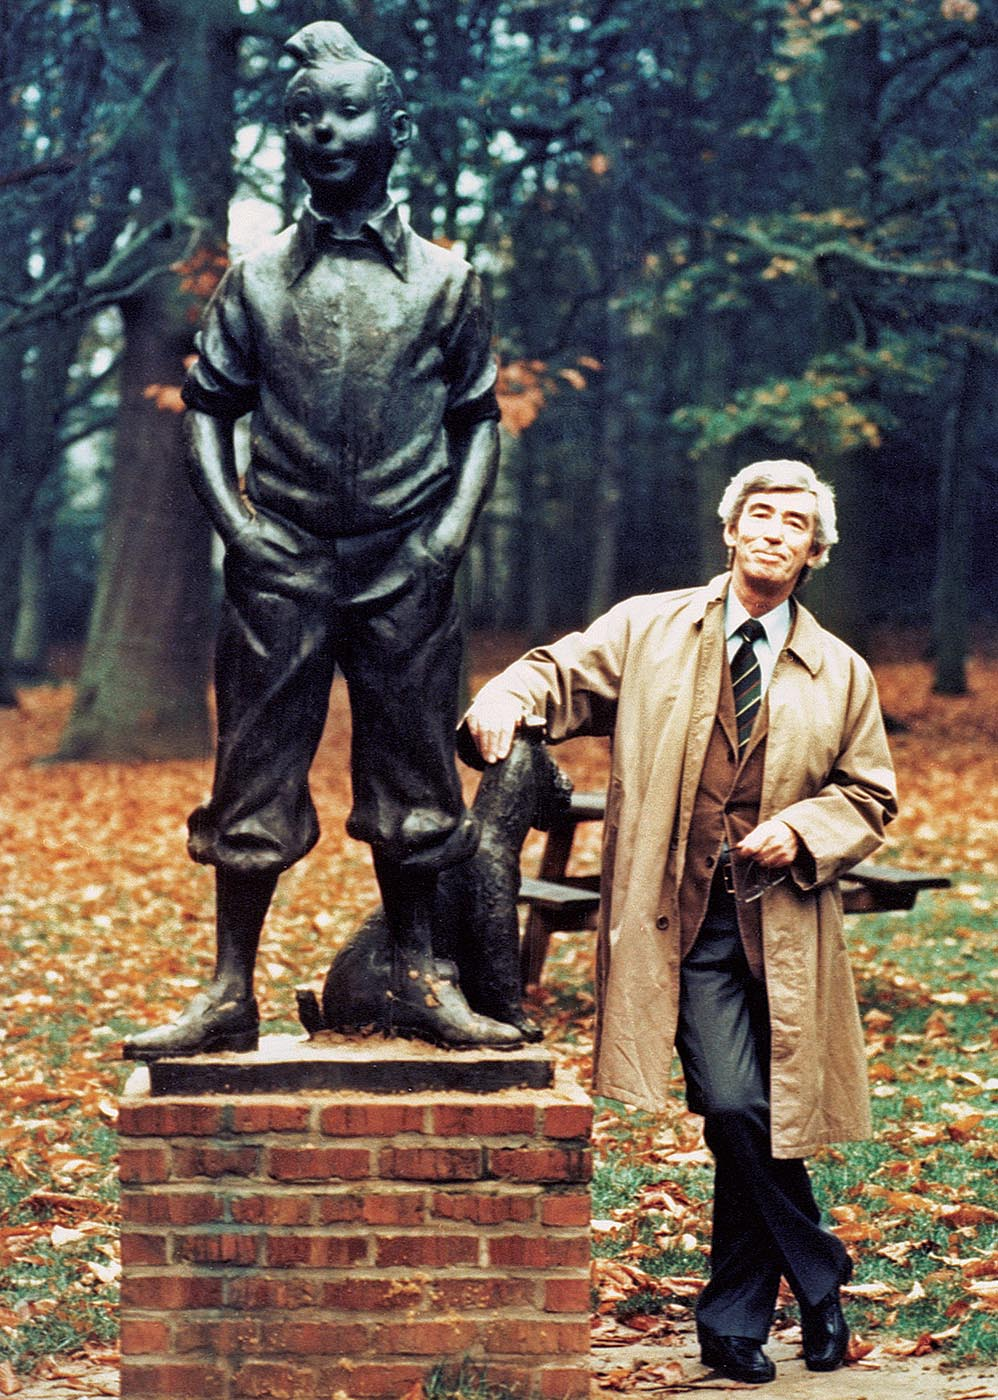 Hergé poses next to the bronze statue that was made by the Belgian artist Nat Neujean